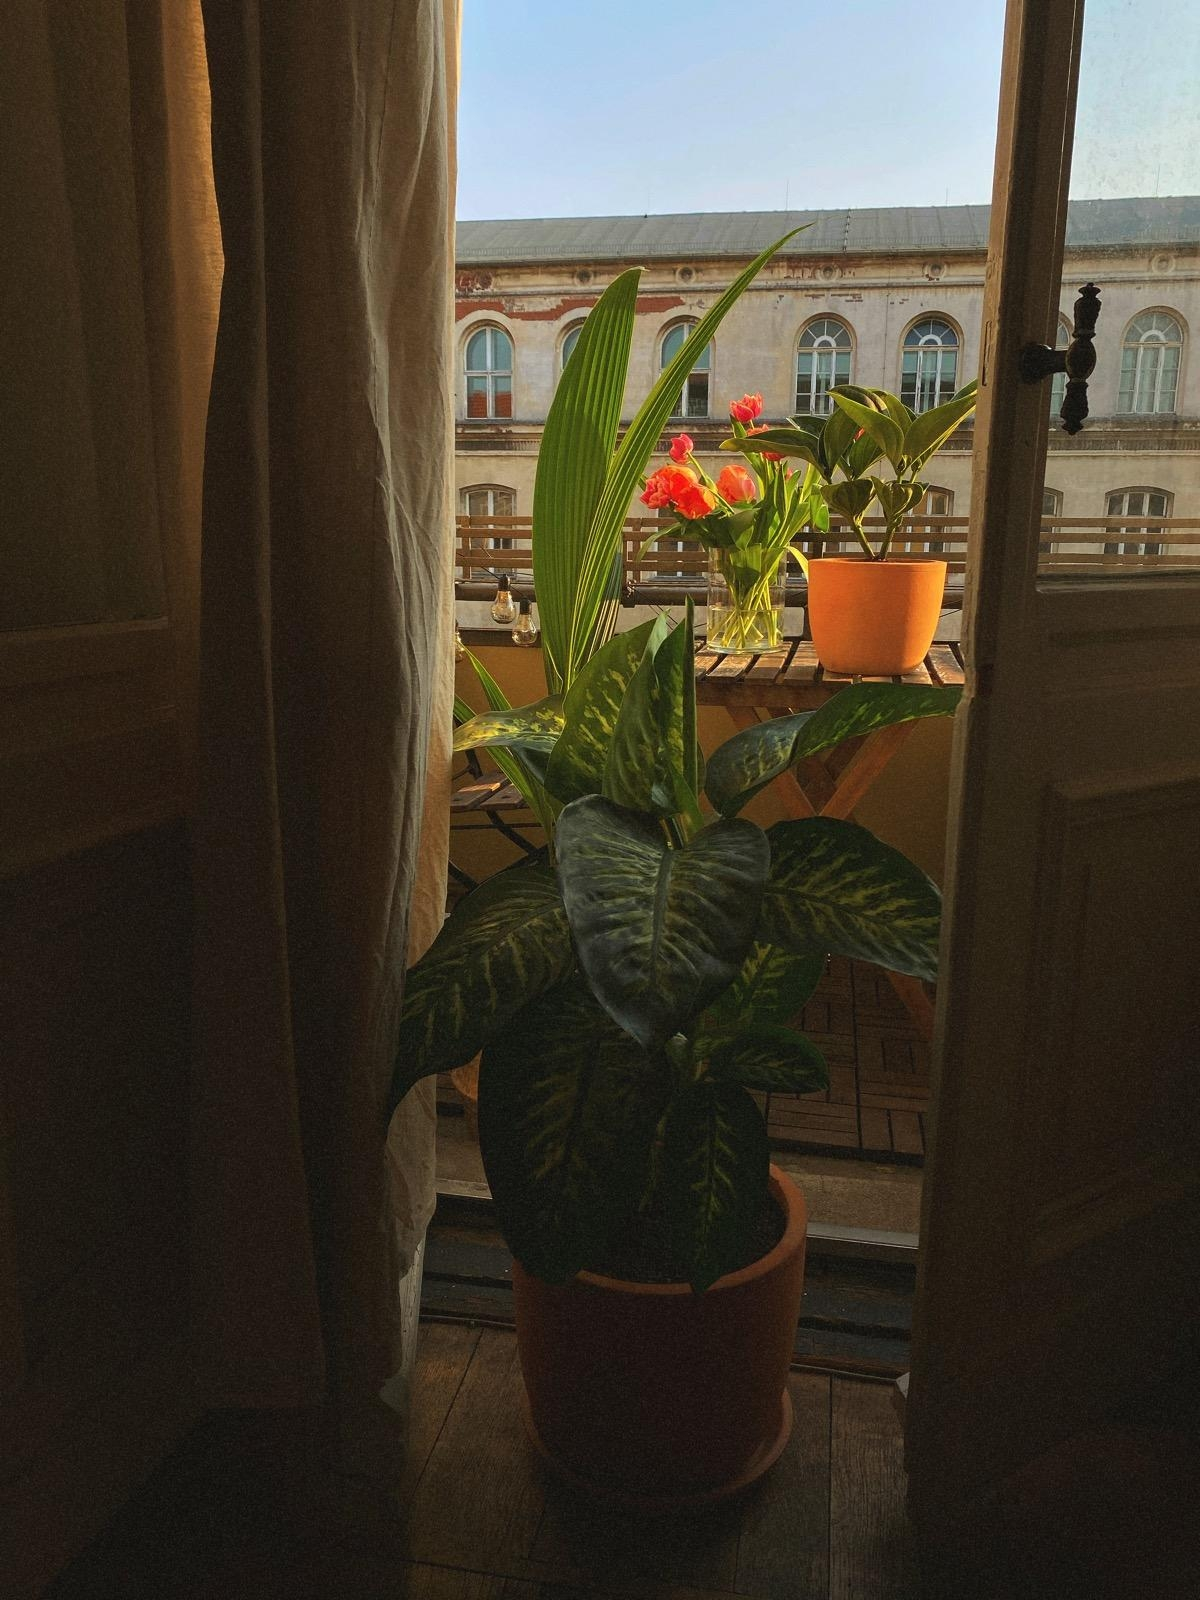 All the best for the plants. #plantgang #home #living #balcony